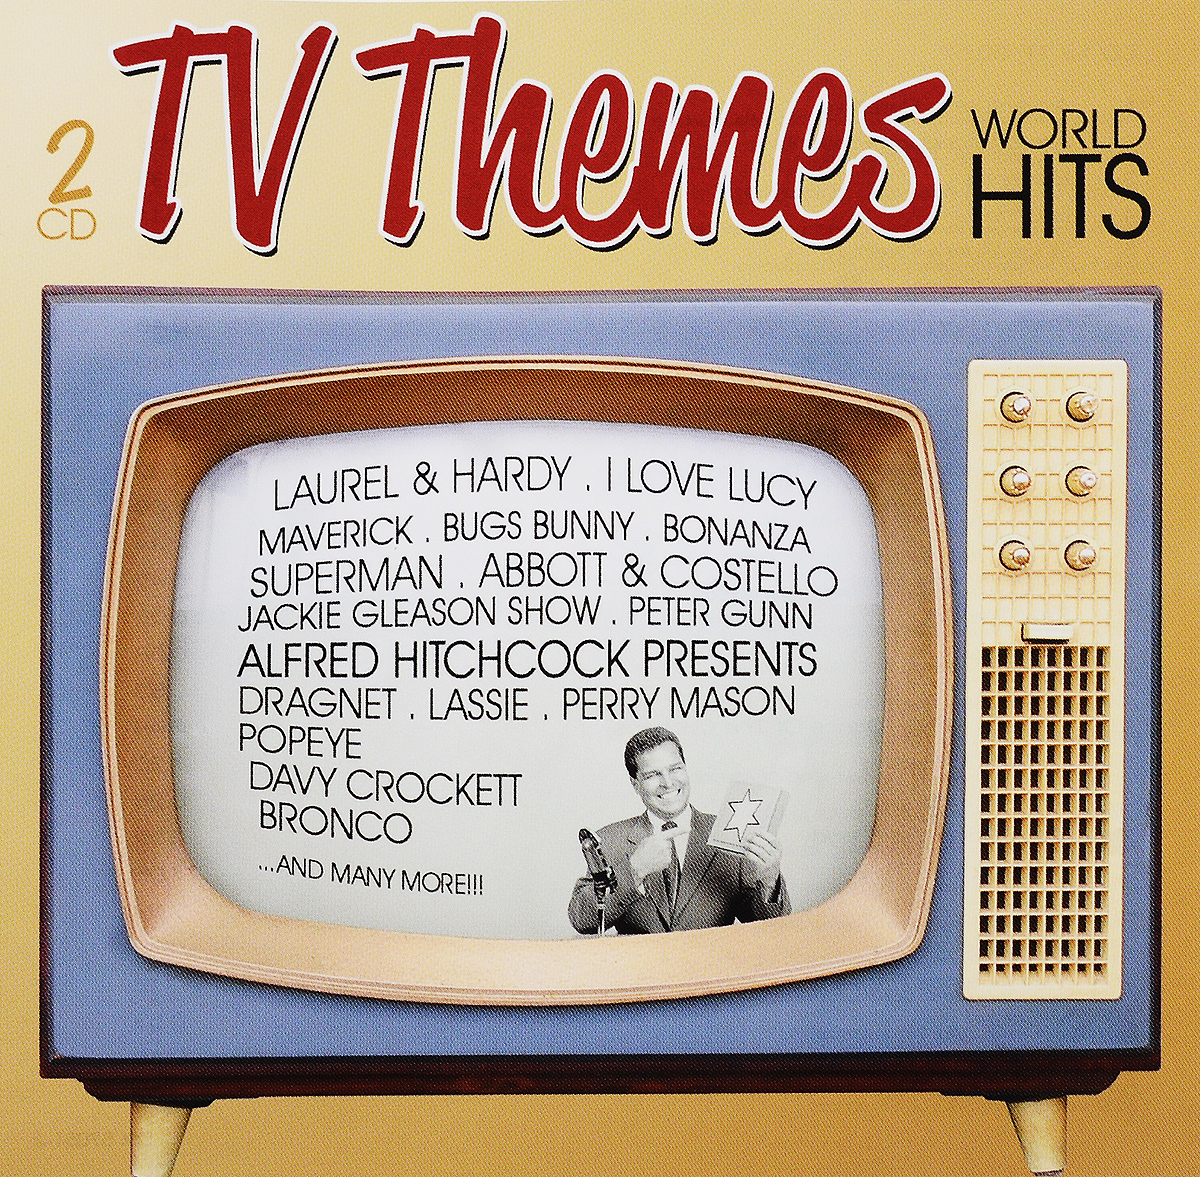 TV Themes World Hits (2 CD)